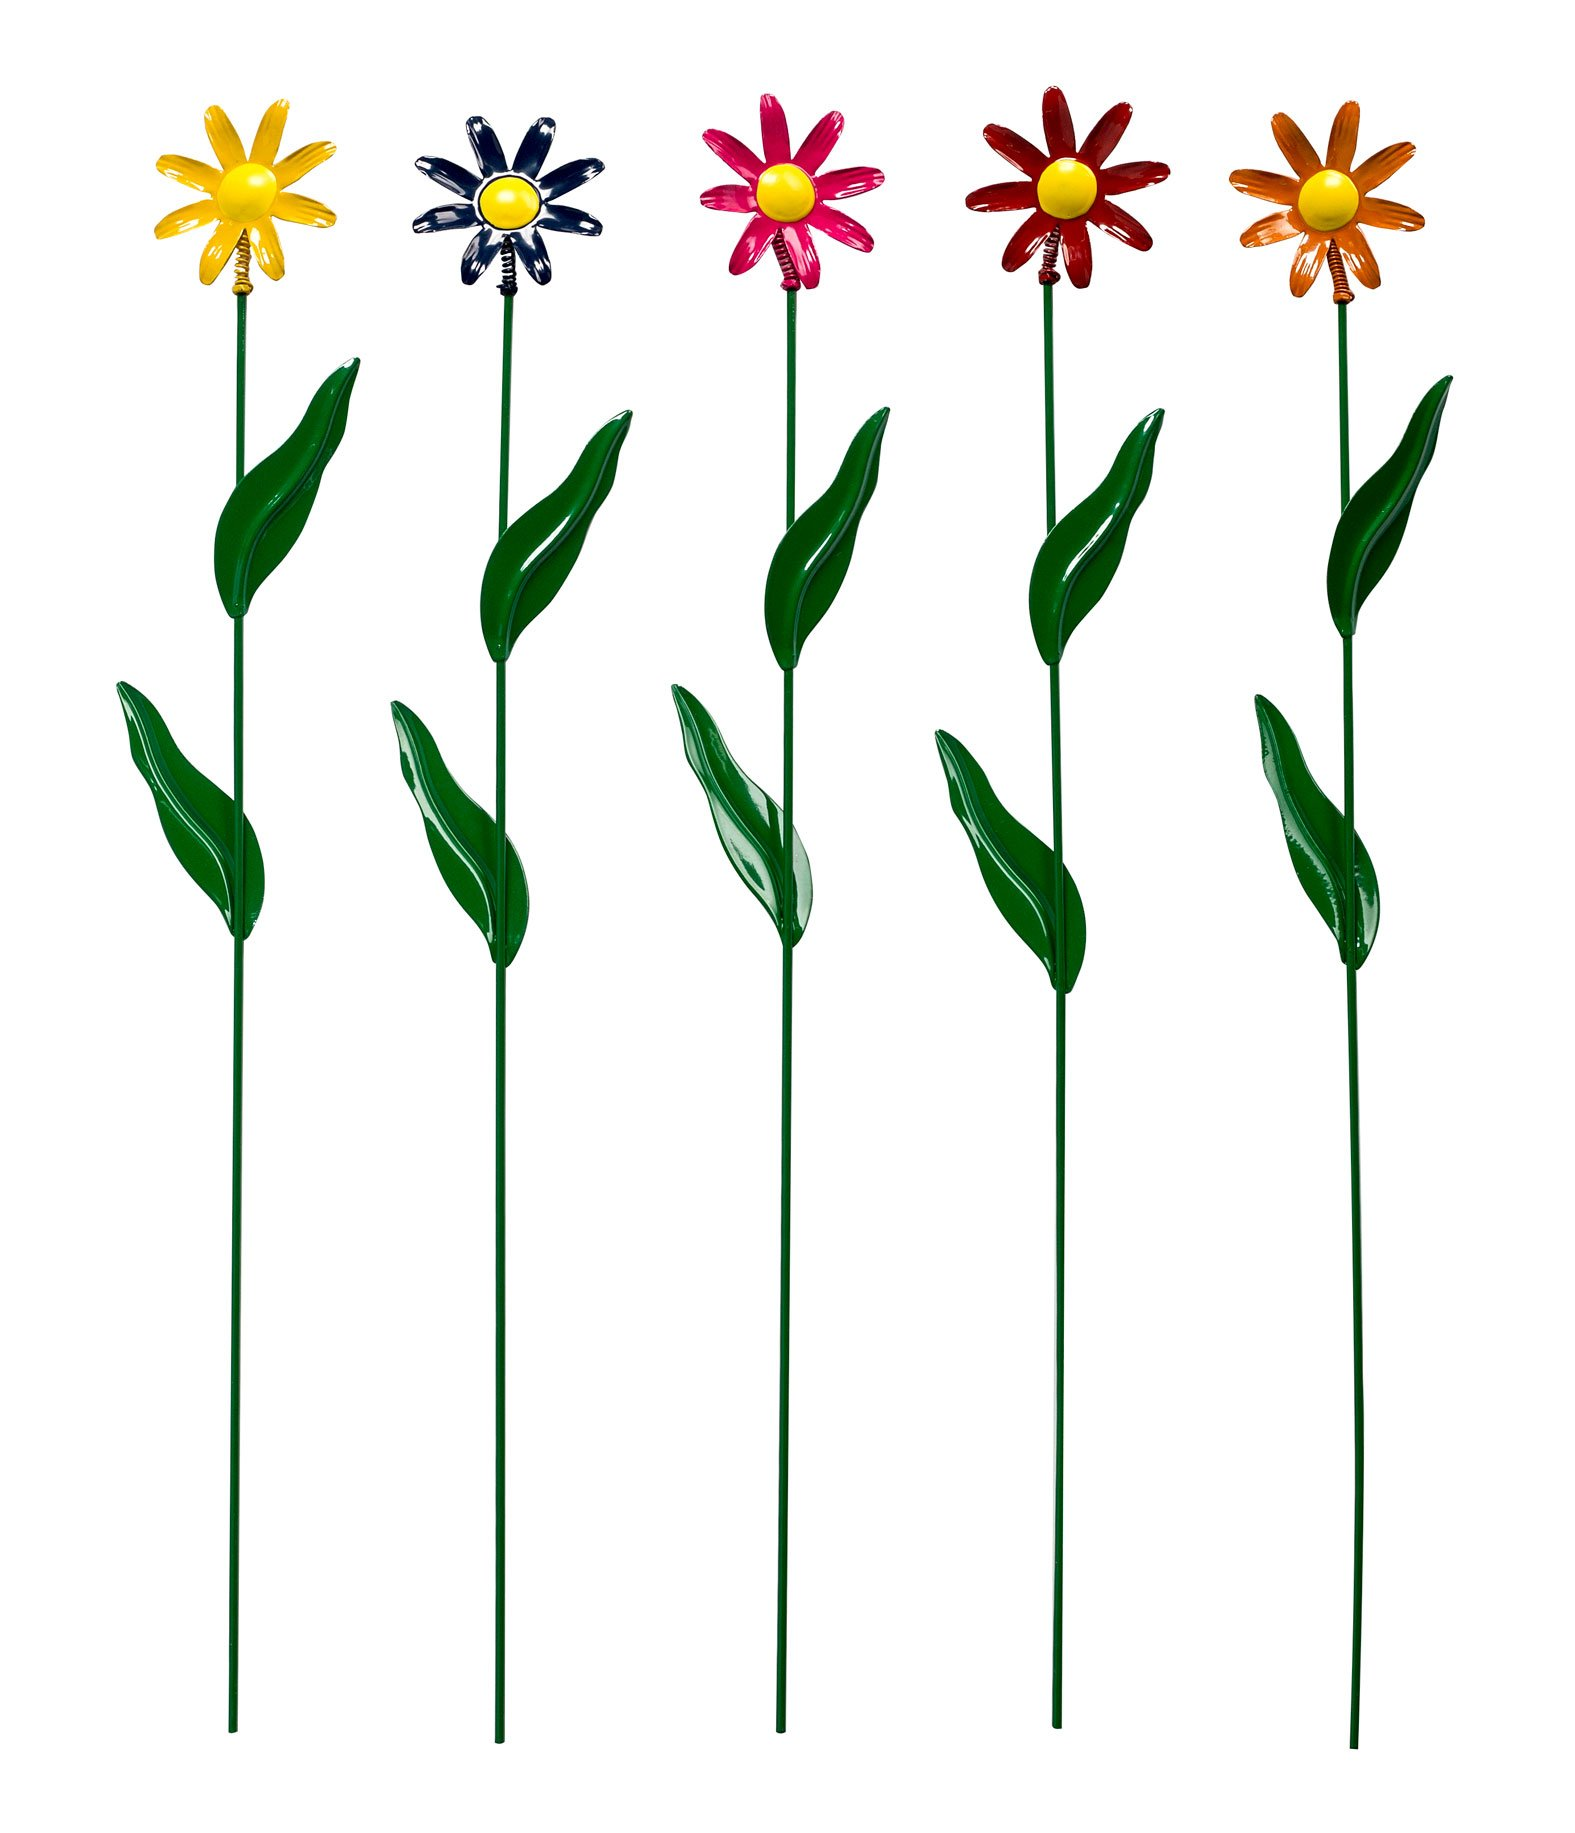 Metal Daisy Stakes, Set of 5 by Maple Lane CreationsTM by Miles Kimball (Image #1)